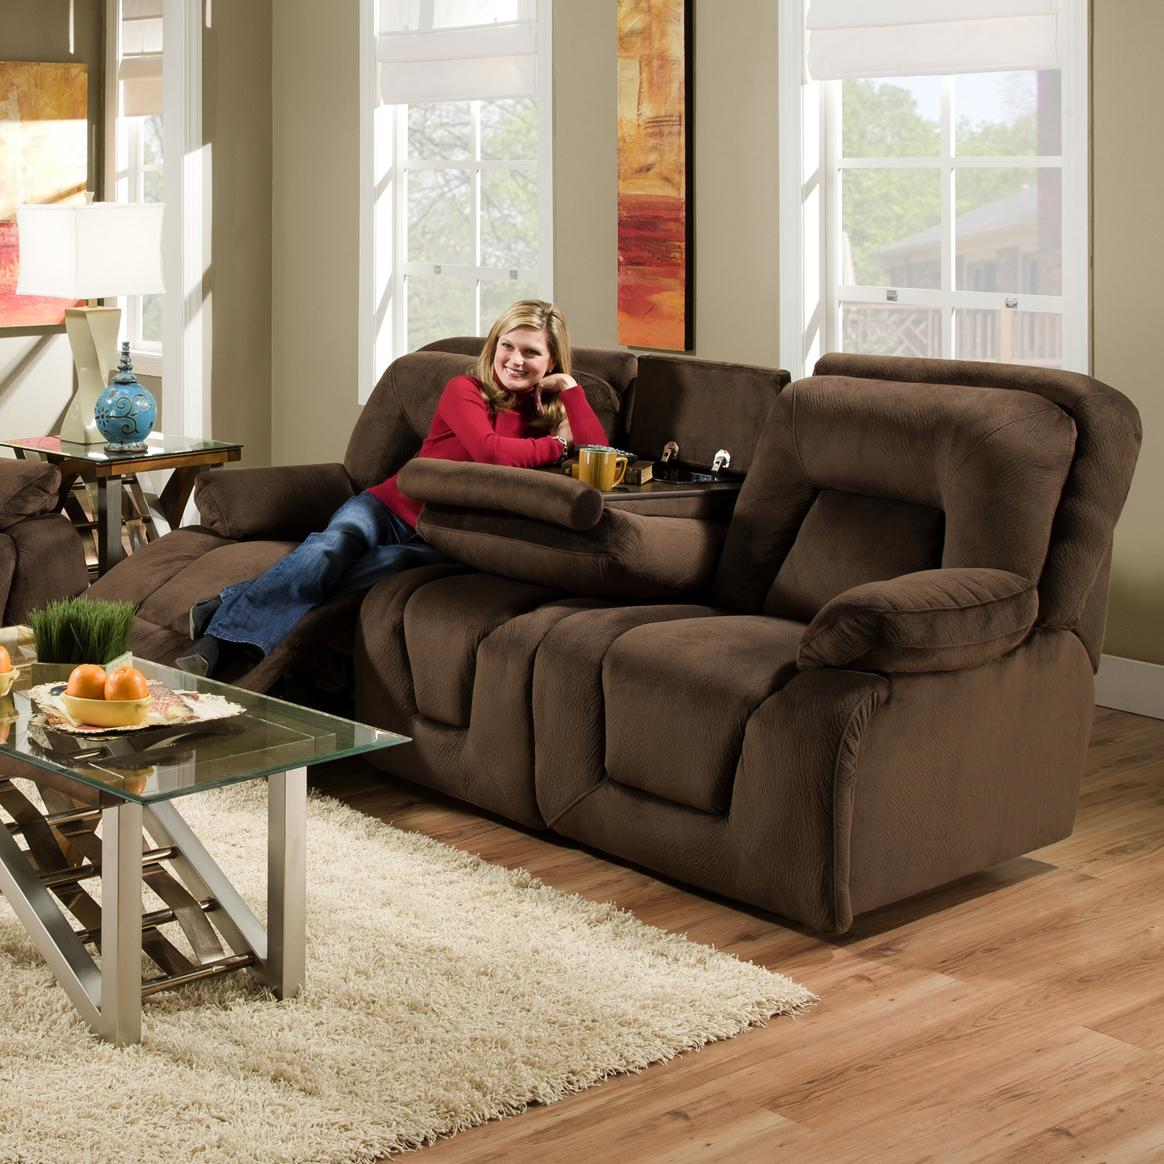 franklin 473 double reclining sofa with drop down table for casual rh catalog findyourfurniture com franklin reclining sofa parts franklin reclining sofa with drop down table